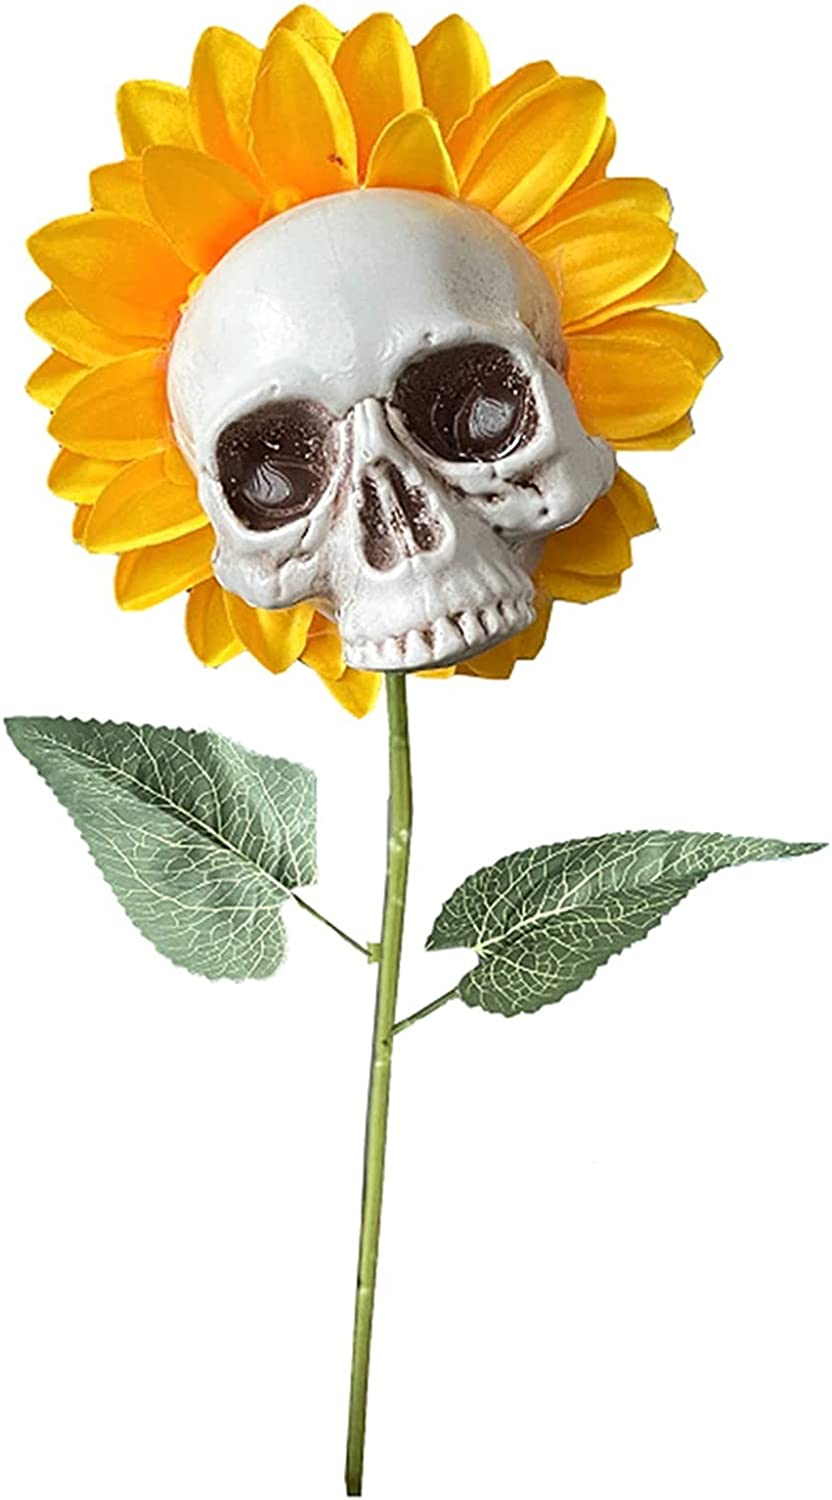 CAOMIAN Sunflower Skull 5% OFF Halloween Special price for a limited time Decoration G Flower Simulation